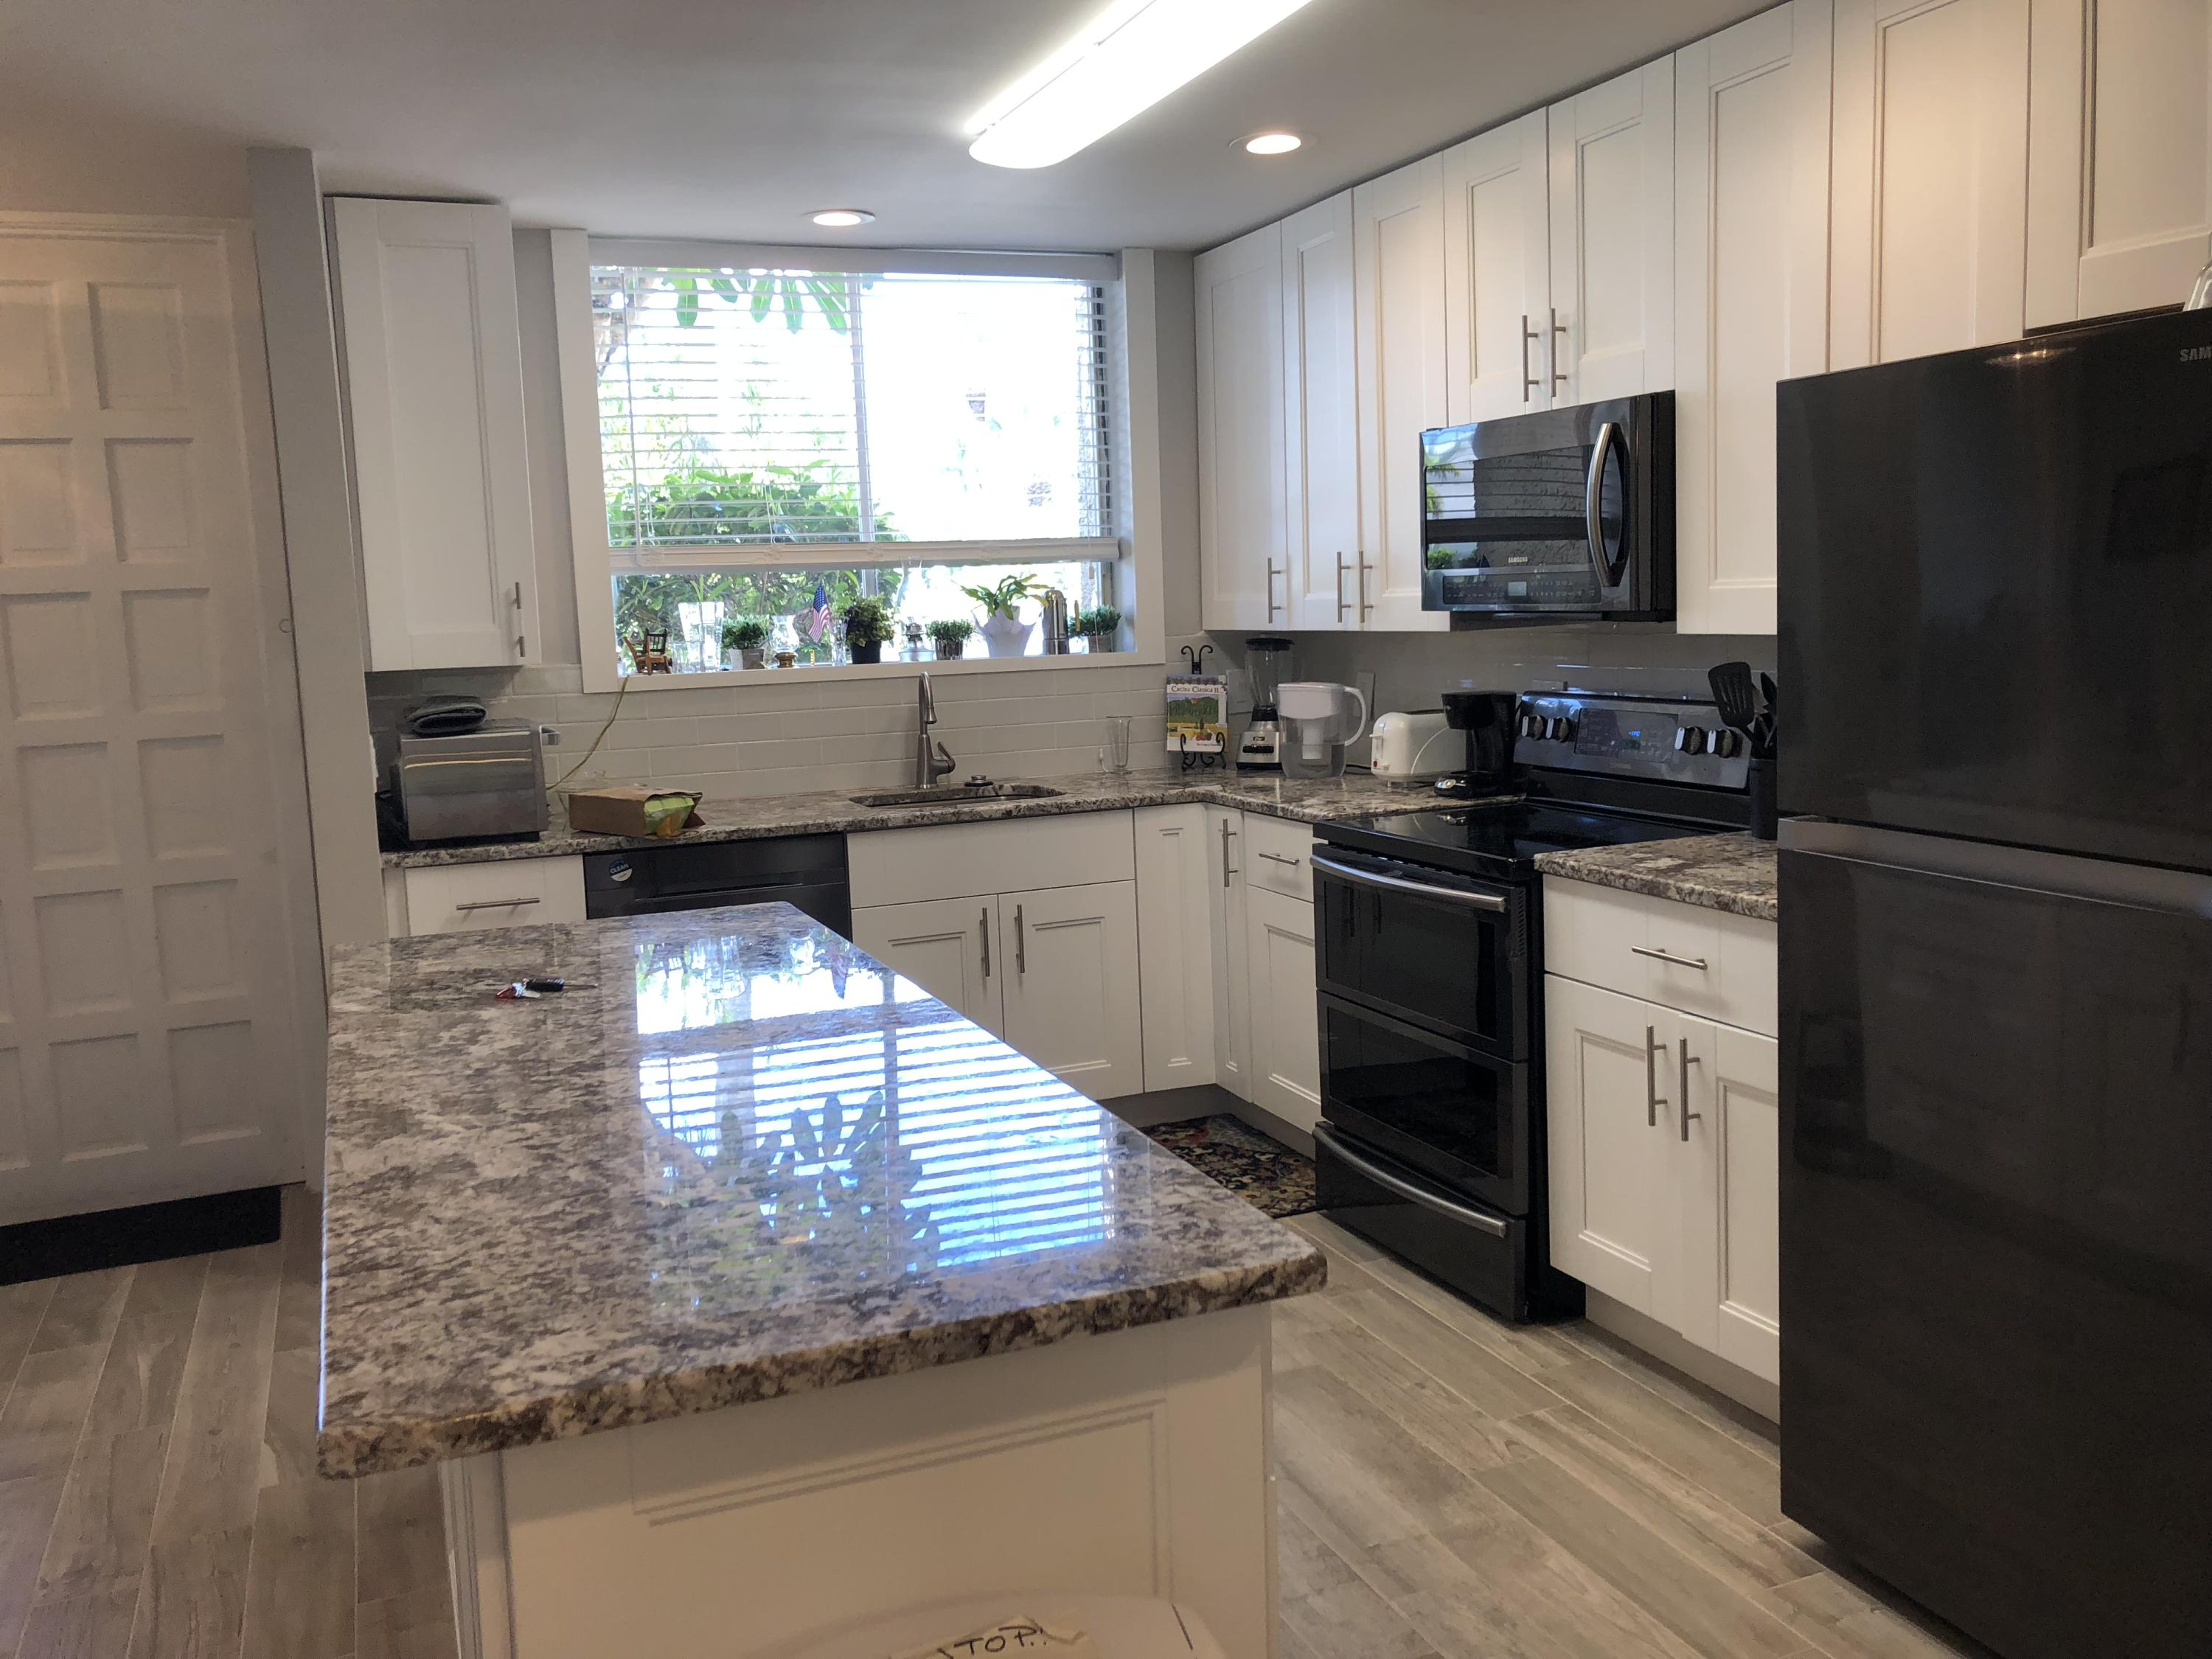 4082 Tivoli Court, Lake Worth, Florida 33467, 3 Bedrooms Bedrooms, ,2 BathroomsBathrooms,Residential,for Rent,Tivoli,RX-10622781, , , ,for Rent